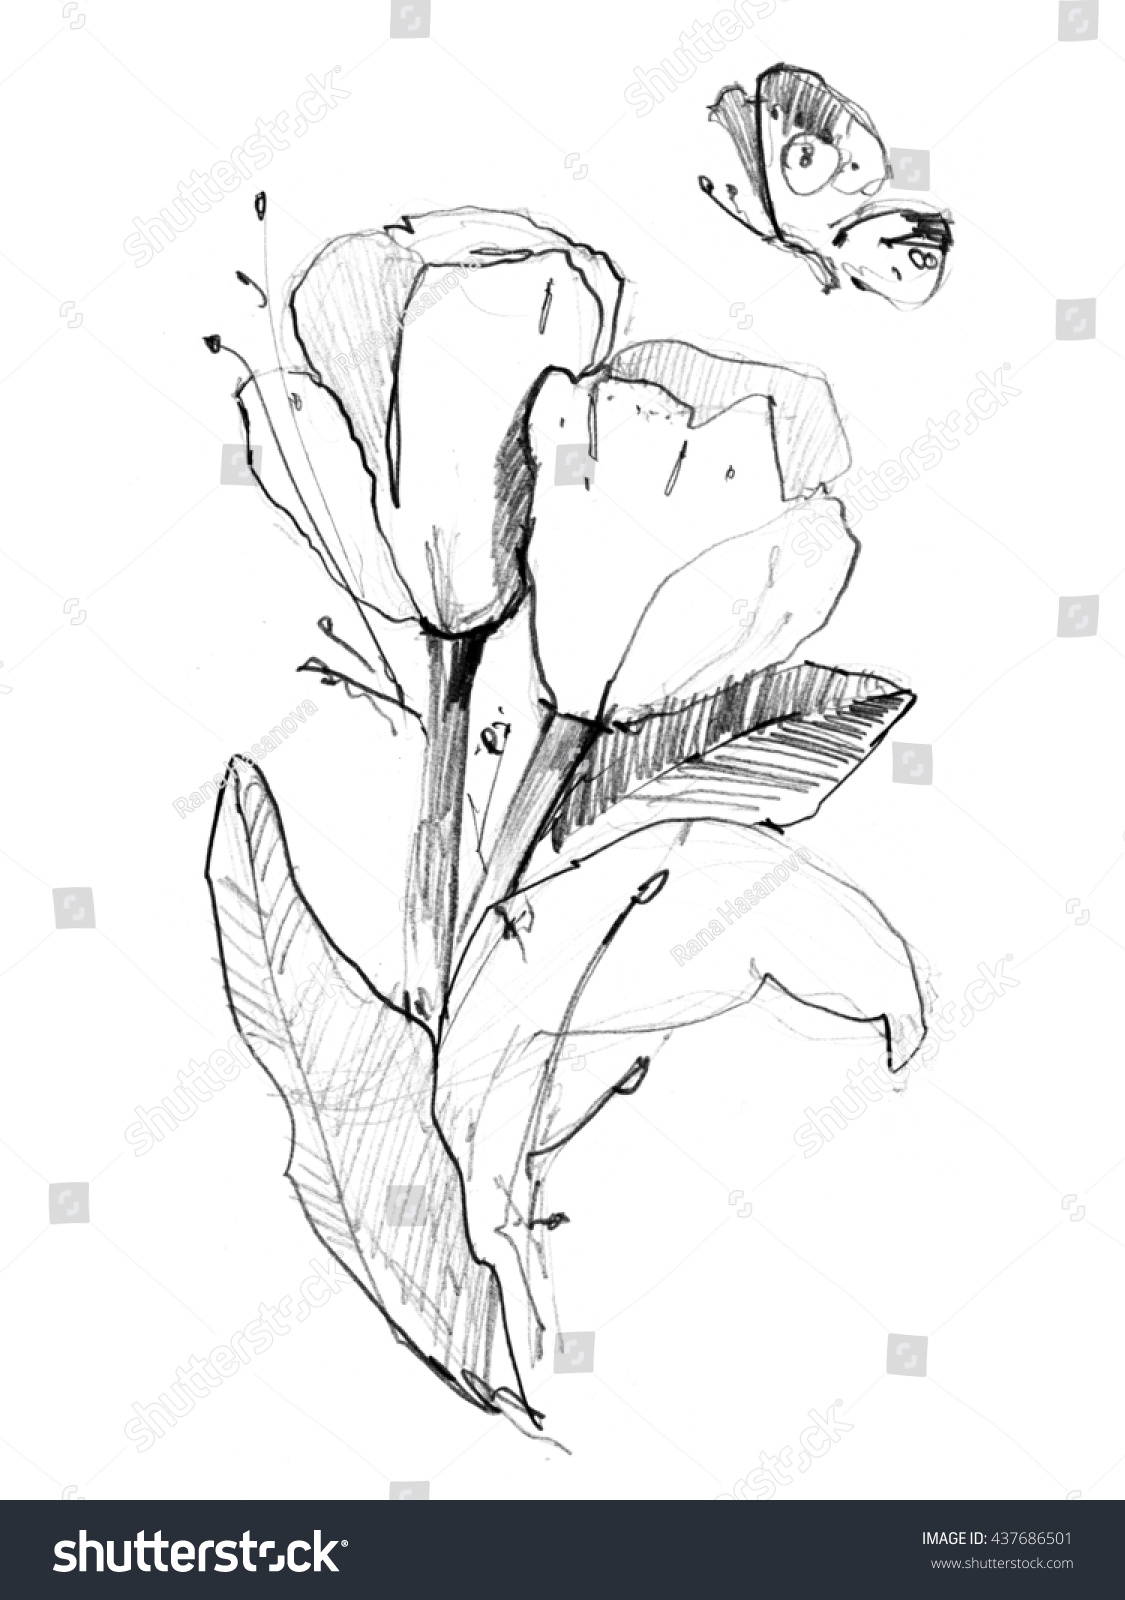 Ink Pencil Watercolor Flower Sketch Line Art Background Hand Drawn Nature Painting